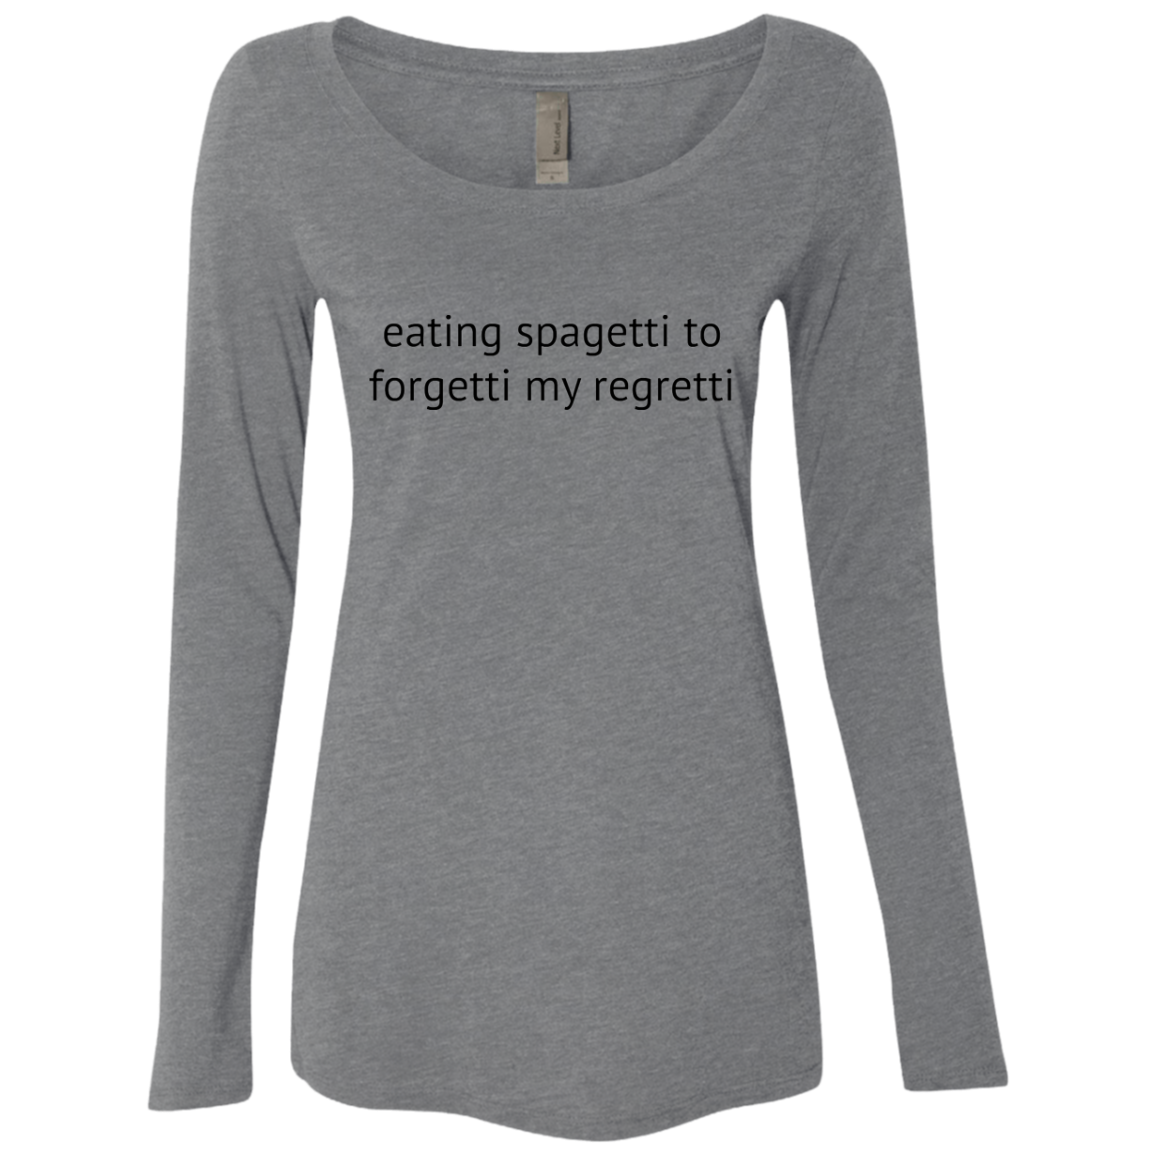 Eating Spagetti to Forgetti My Regretti Women's Long Sleeve Tee - Trendy Tees